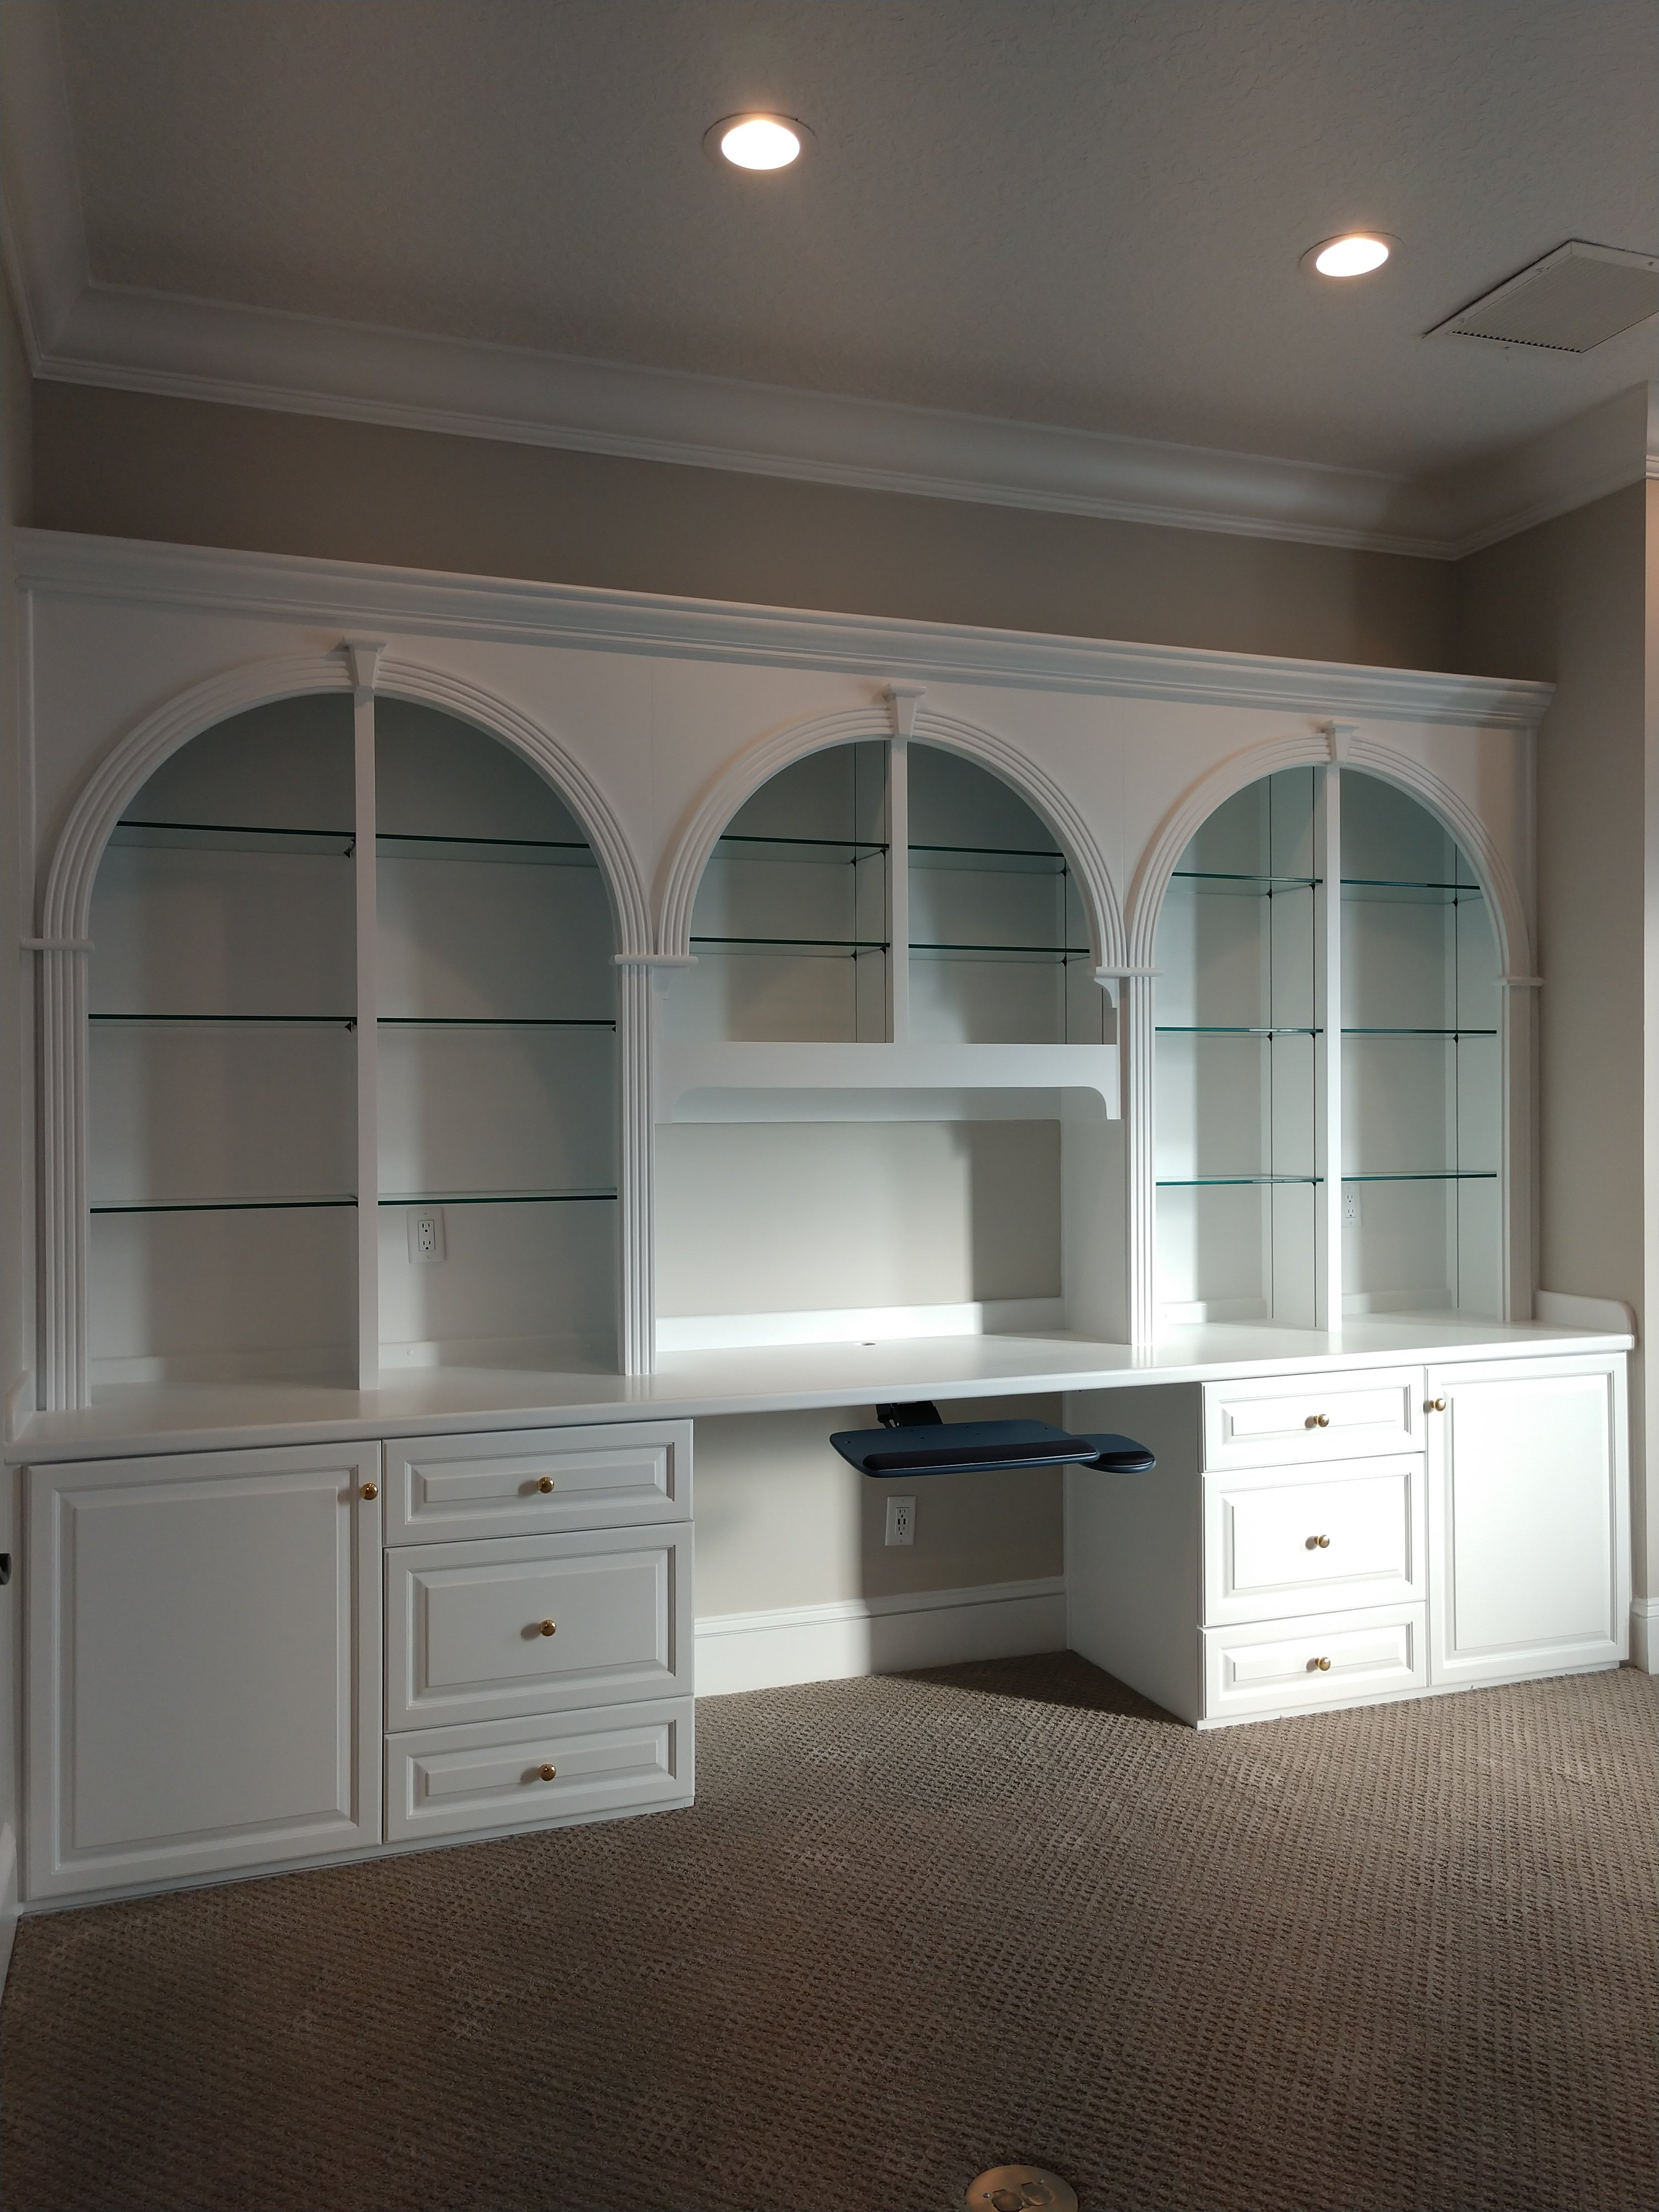 Desk And Built In Cabinet Painting In Deerwood